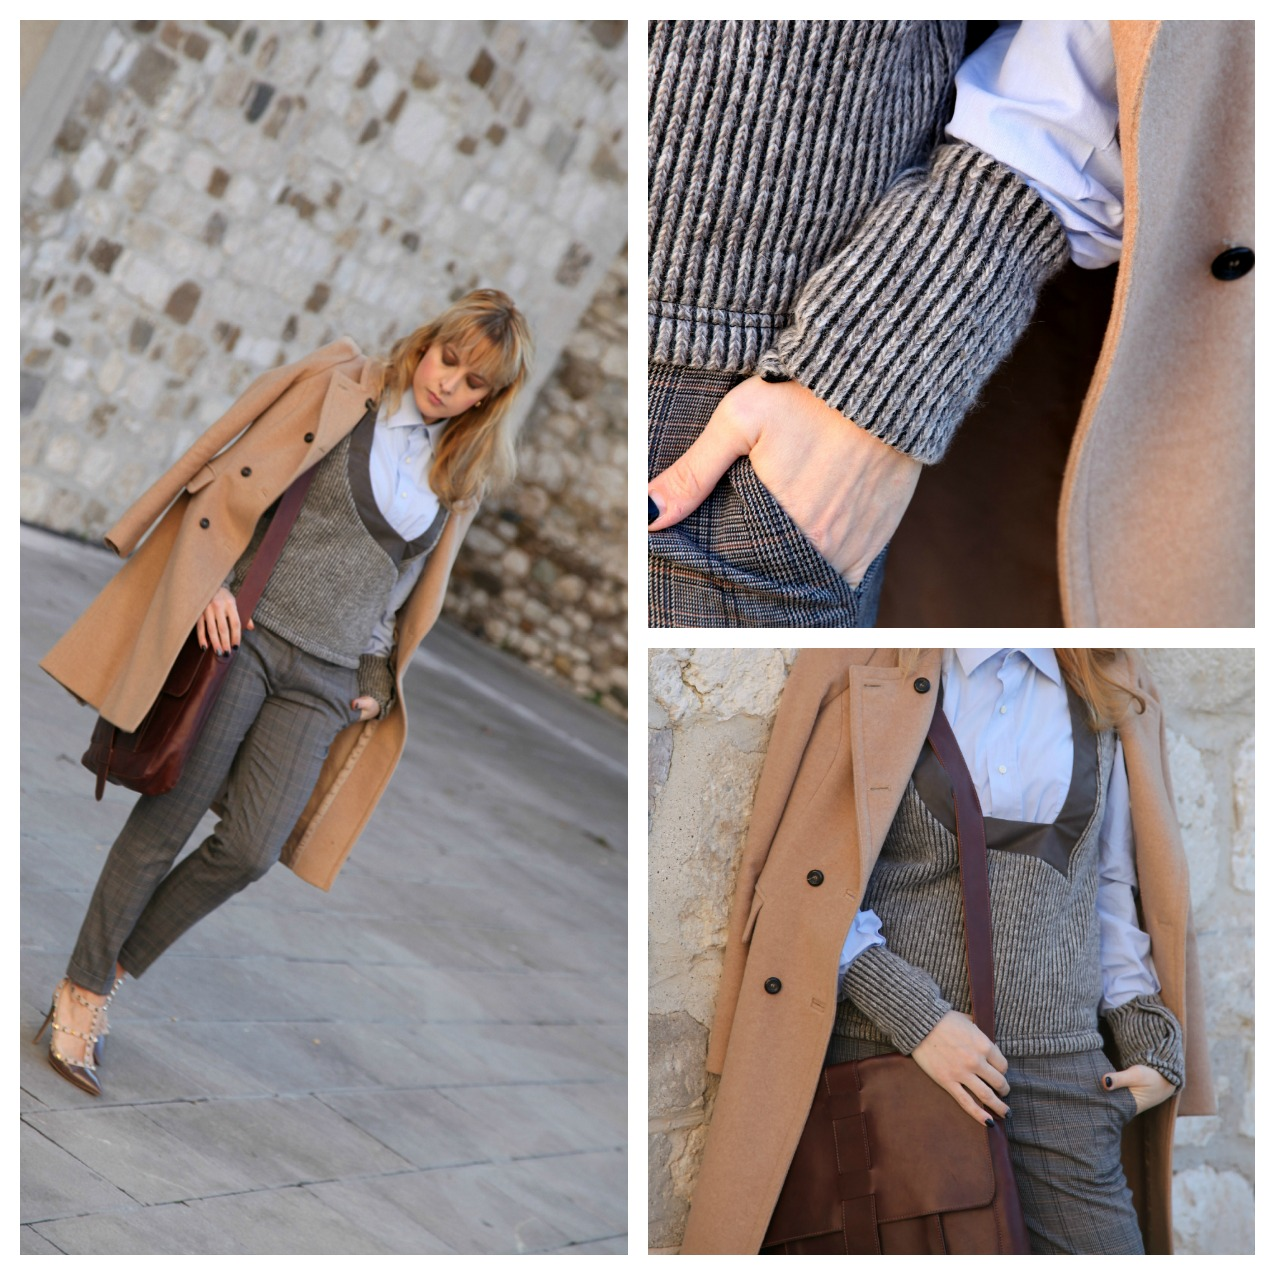 Style corner: come abbinare il cappotto cammello, alessia milanese, thechilicool, fashion blog, fashion blogger, come abbinare il cappotto cammello, alessia milanese, thechilicool, fashion blog, fashion blogger